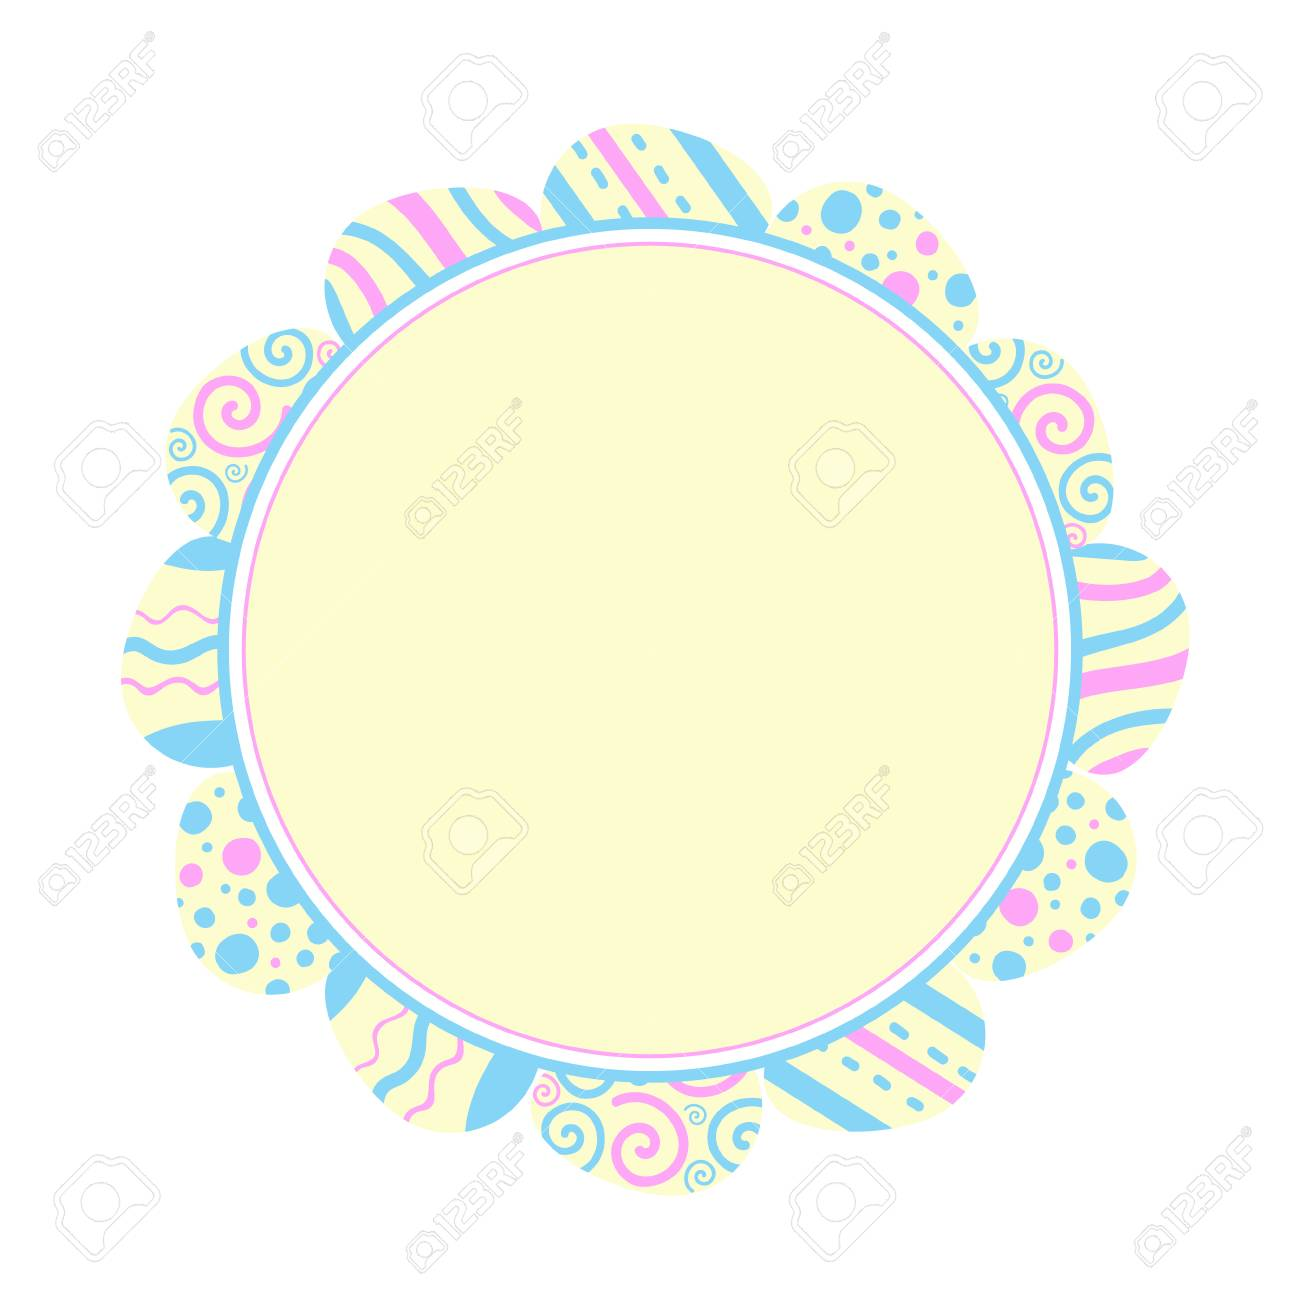 Illustration round frame of colored eggs. Easter holiday. Flat design - 97490207